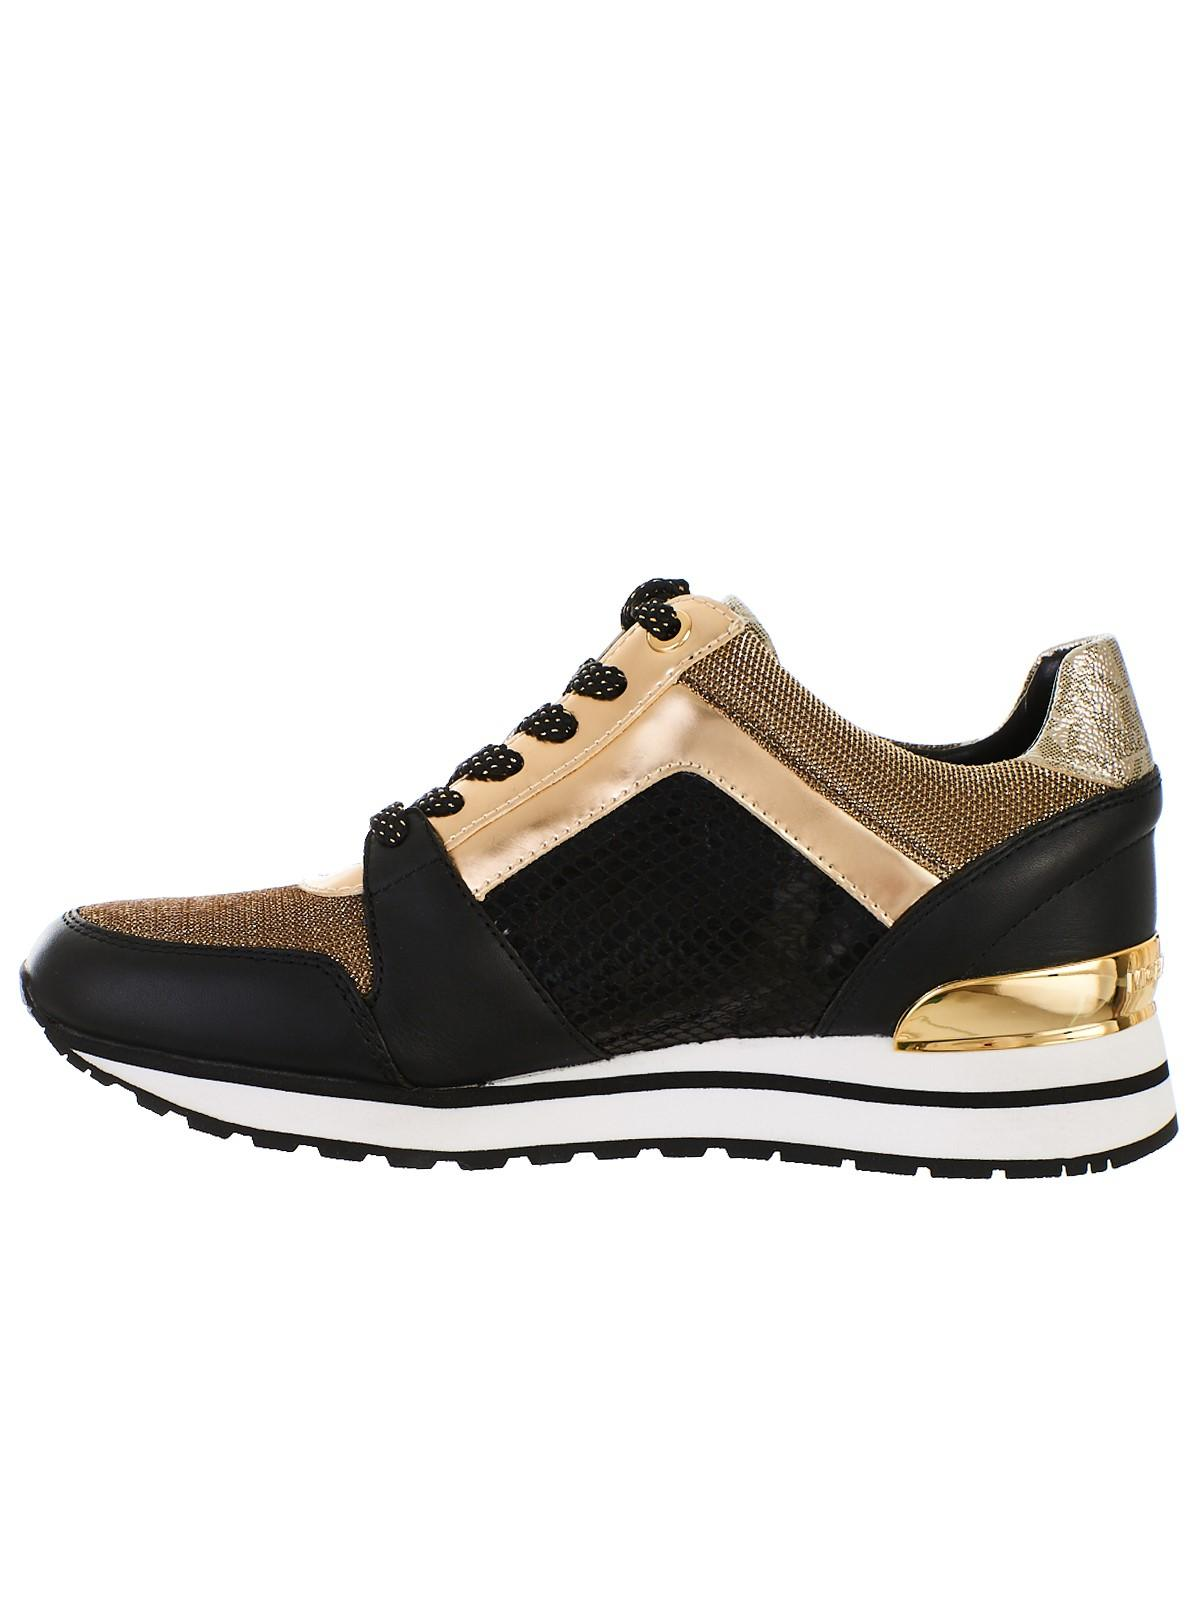 bea33b3bc598 Lyst - MICHAEL Michael Kors Black And Gold Billie Trainer Sneakers in Black  - Save 2%